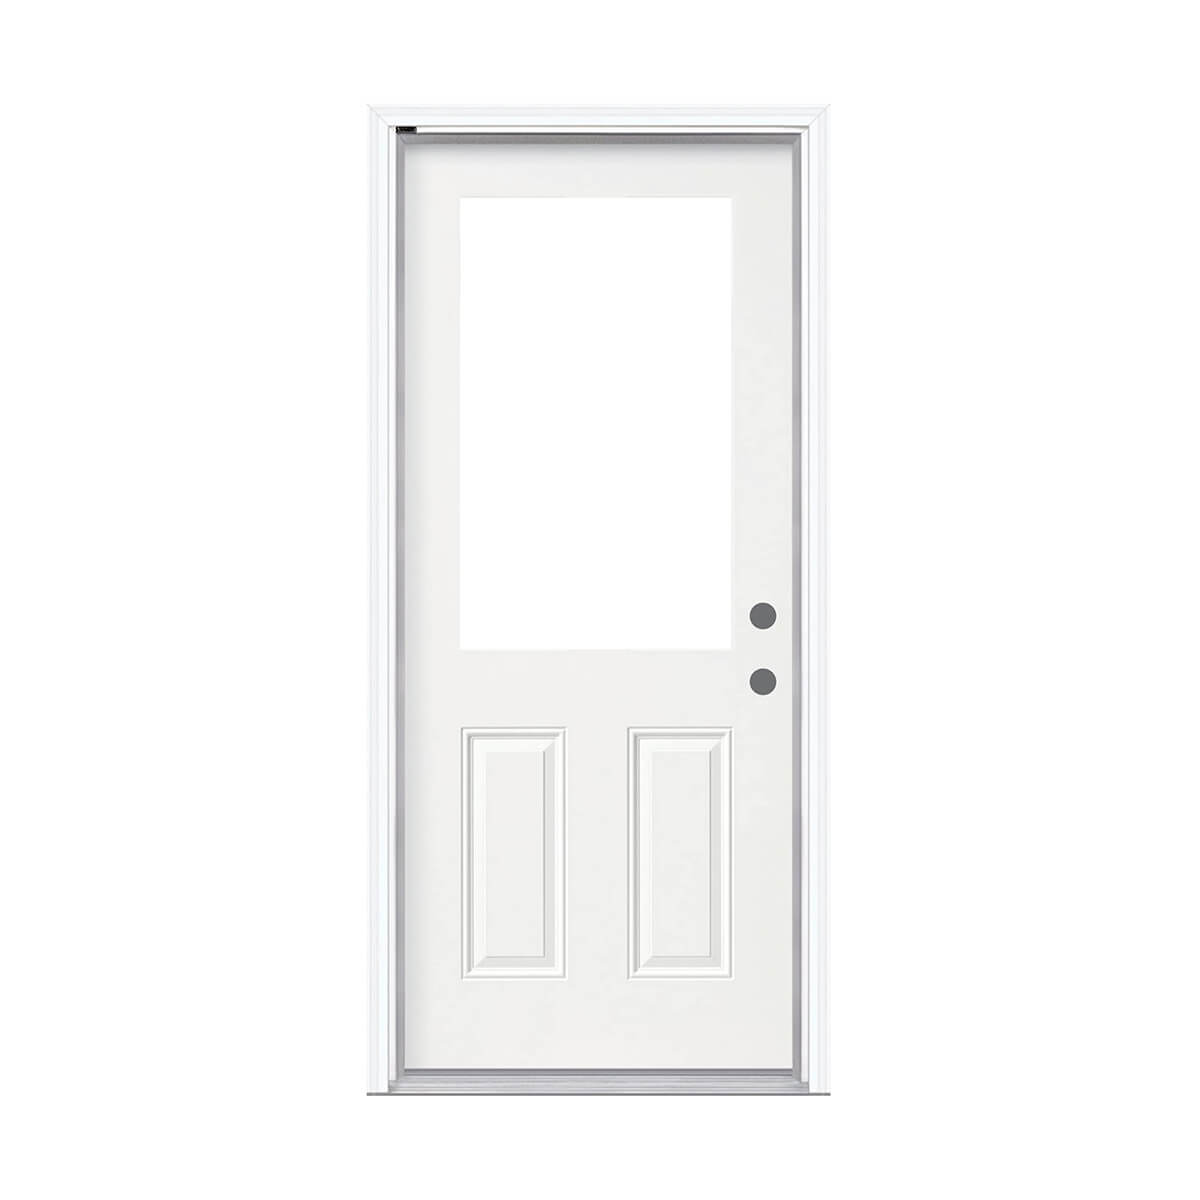 Steel Entry Door With 1/2 Lite Cutout - 2x6 FJ Pine Jamb -  Left Hand Inswing - Double Drill